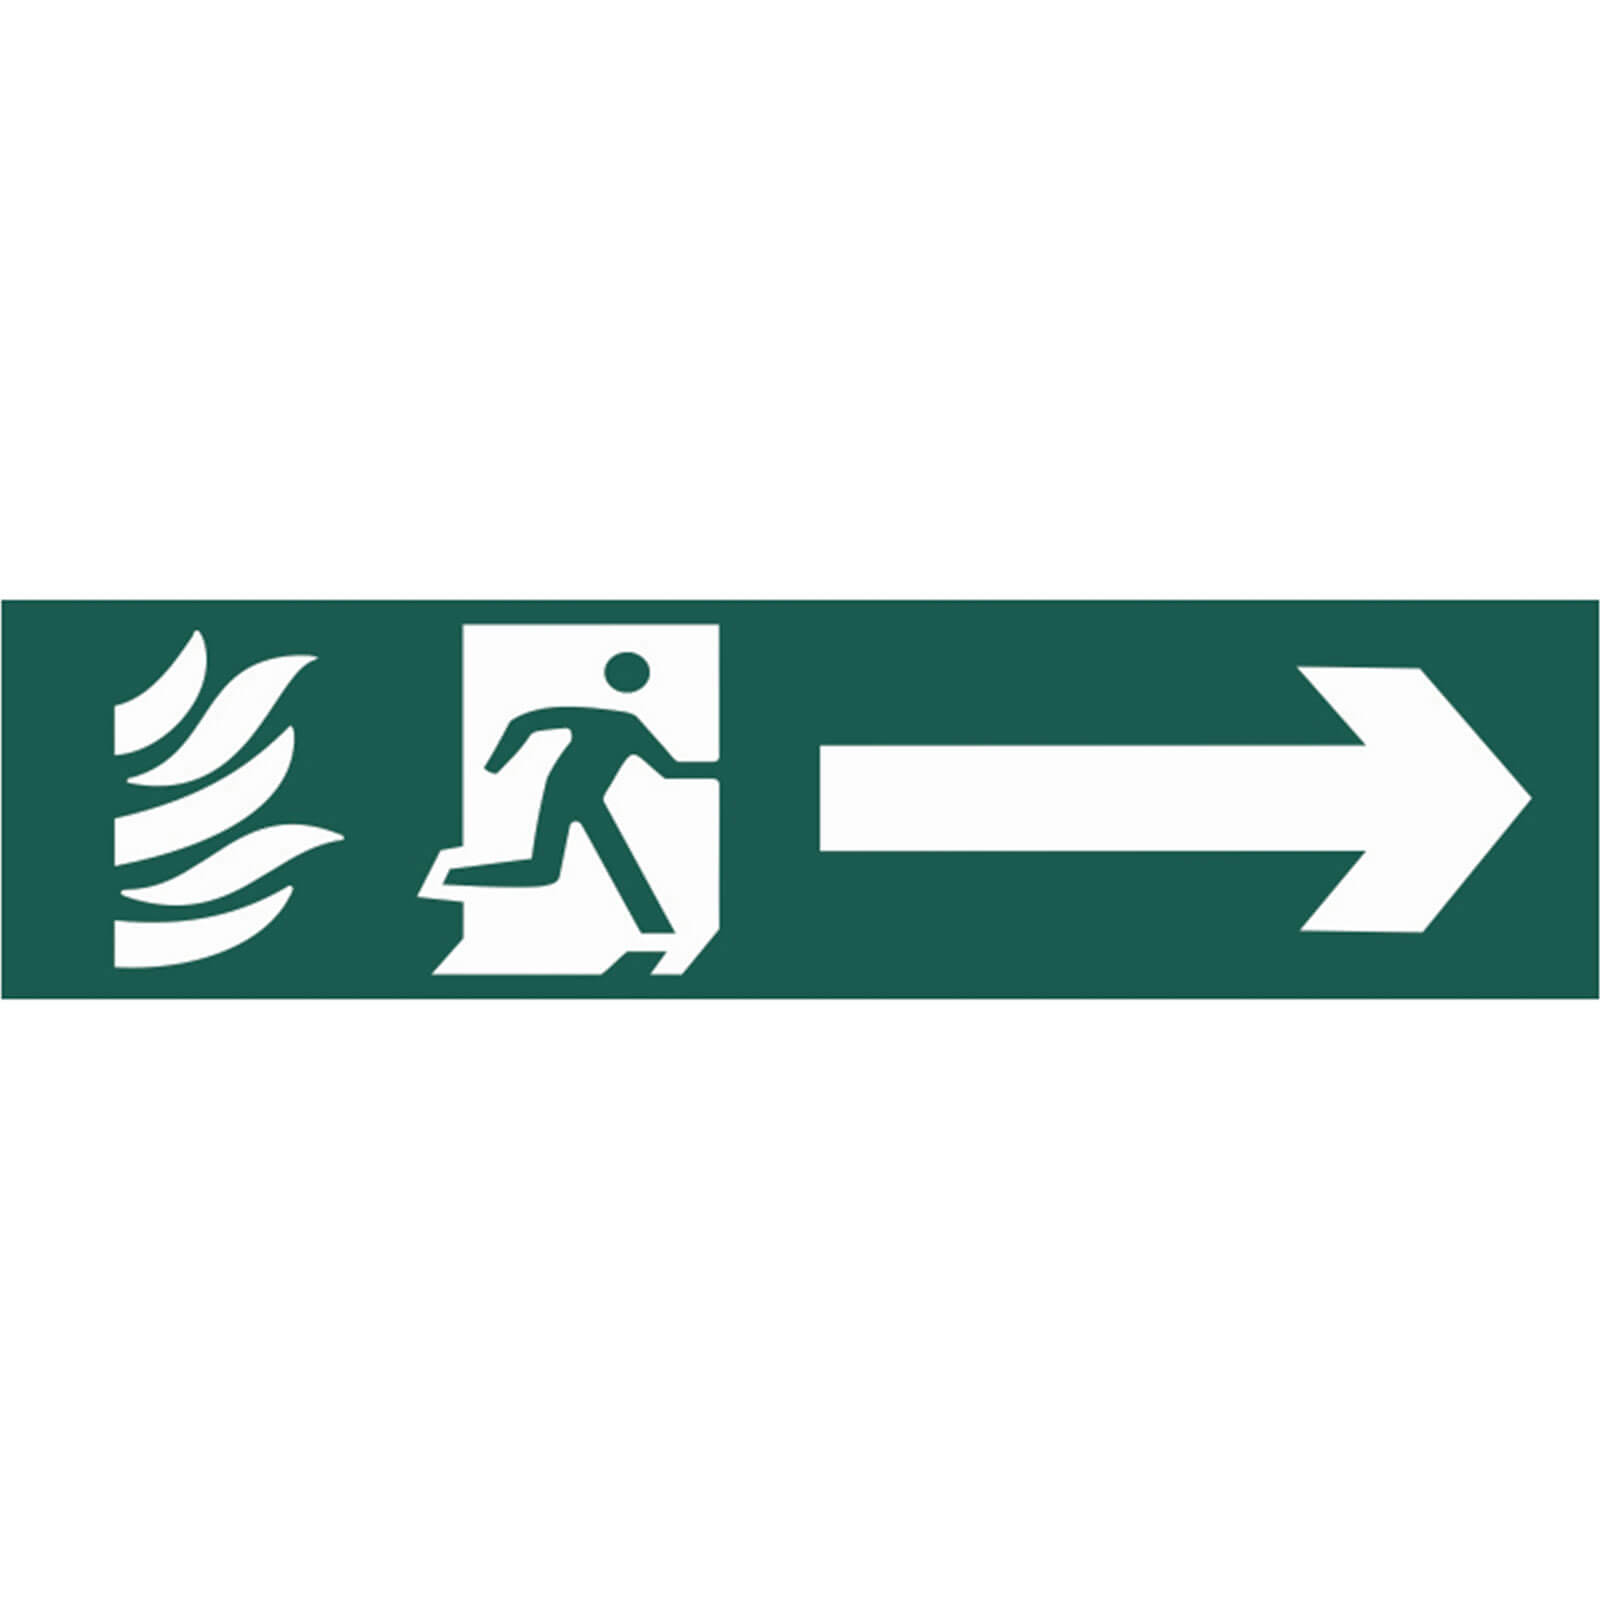 Tooled Up/Safety & Workwear/Safety/Scan 200 x 50mm PVC Sign - Running Man Arrow Right